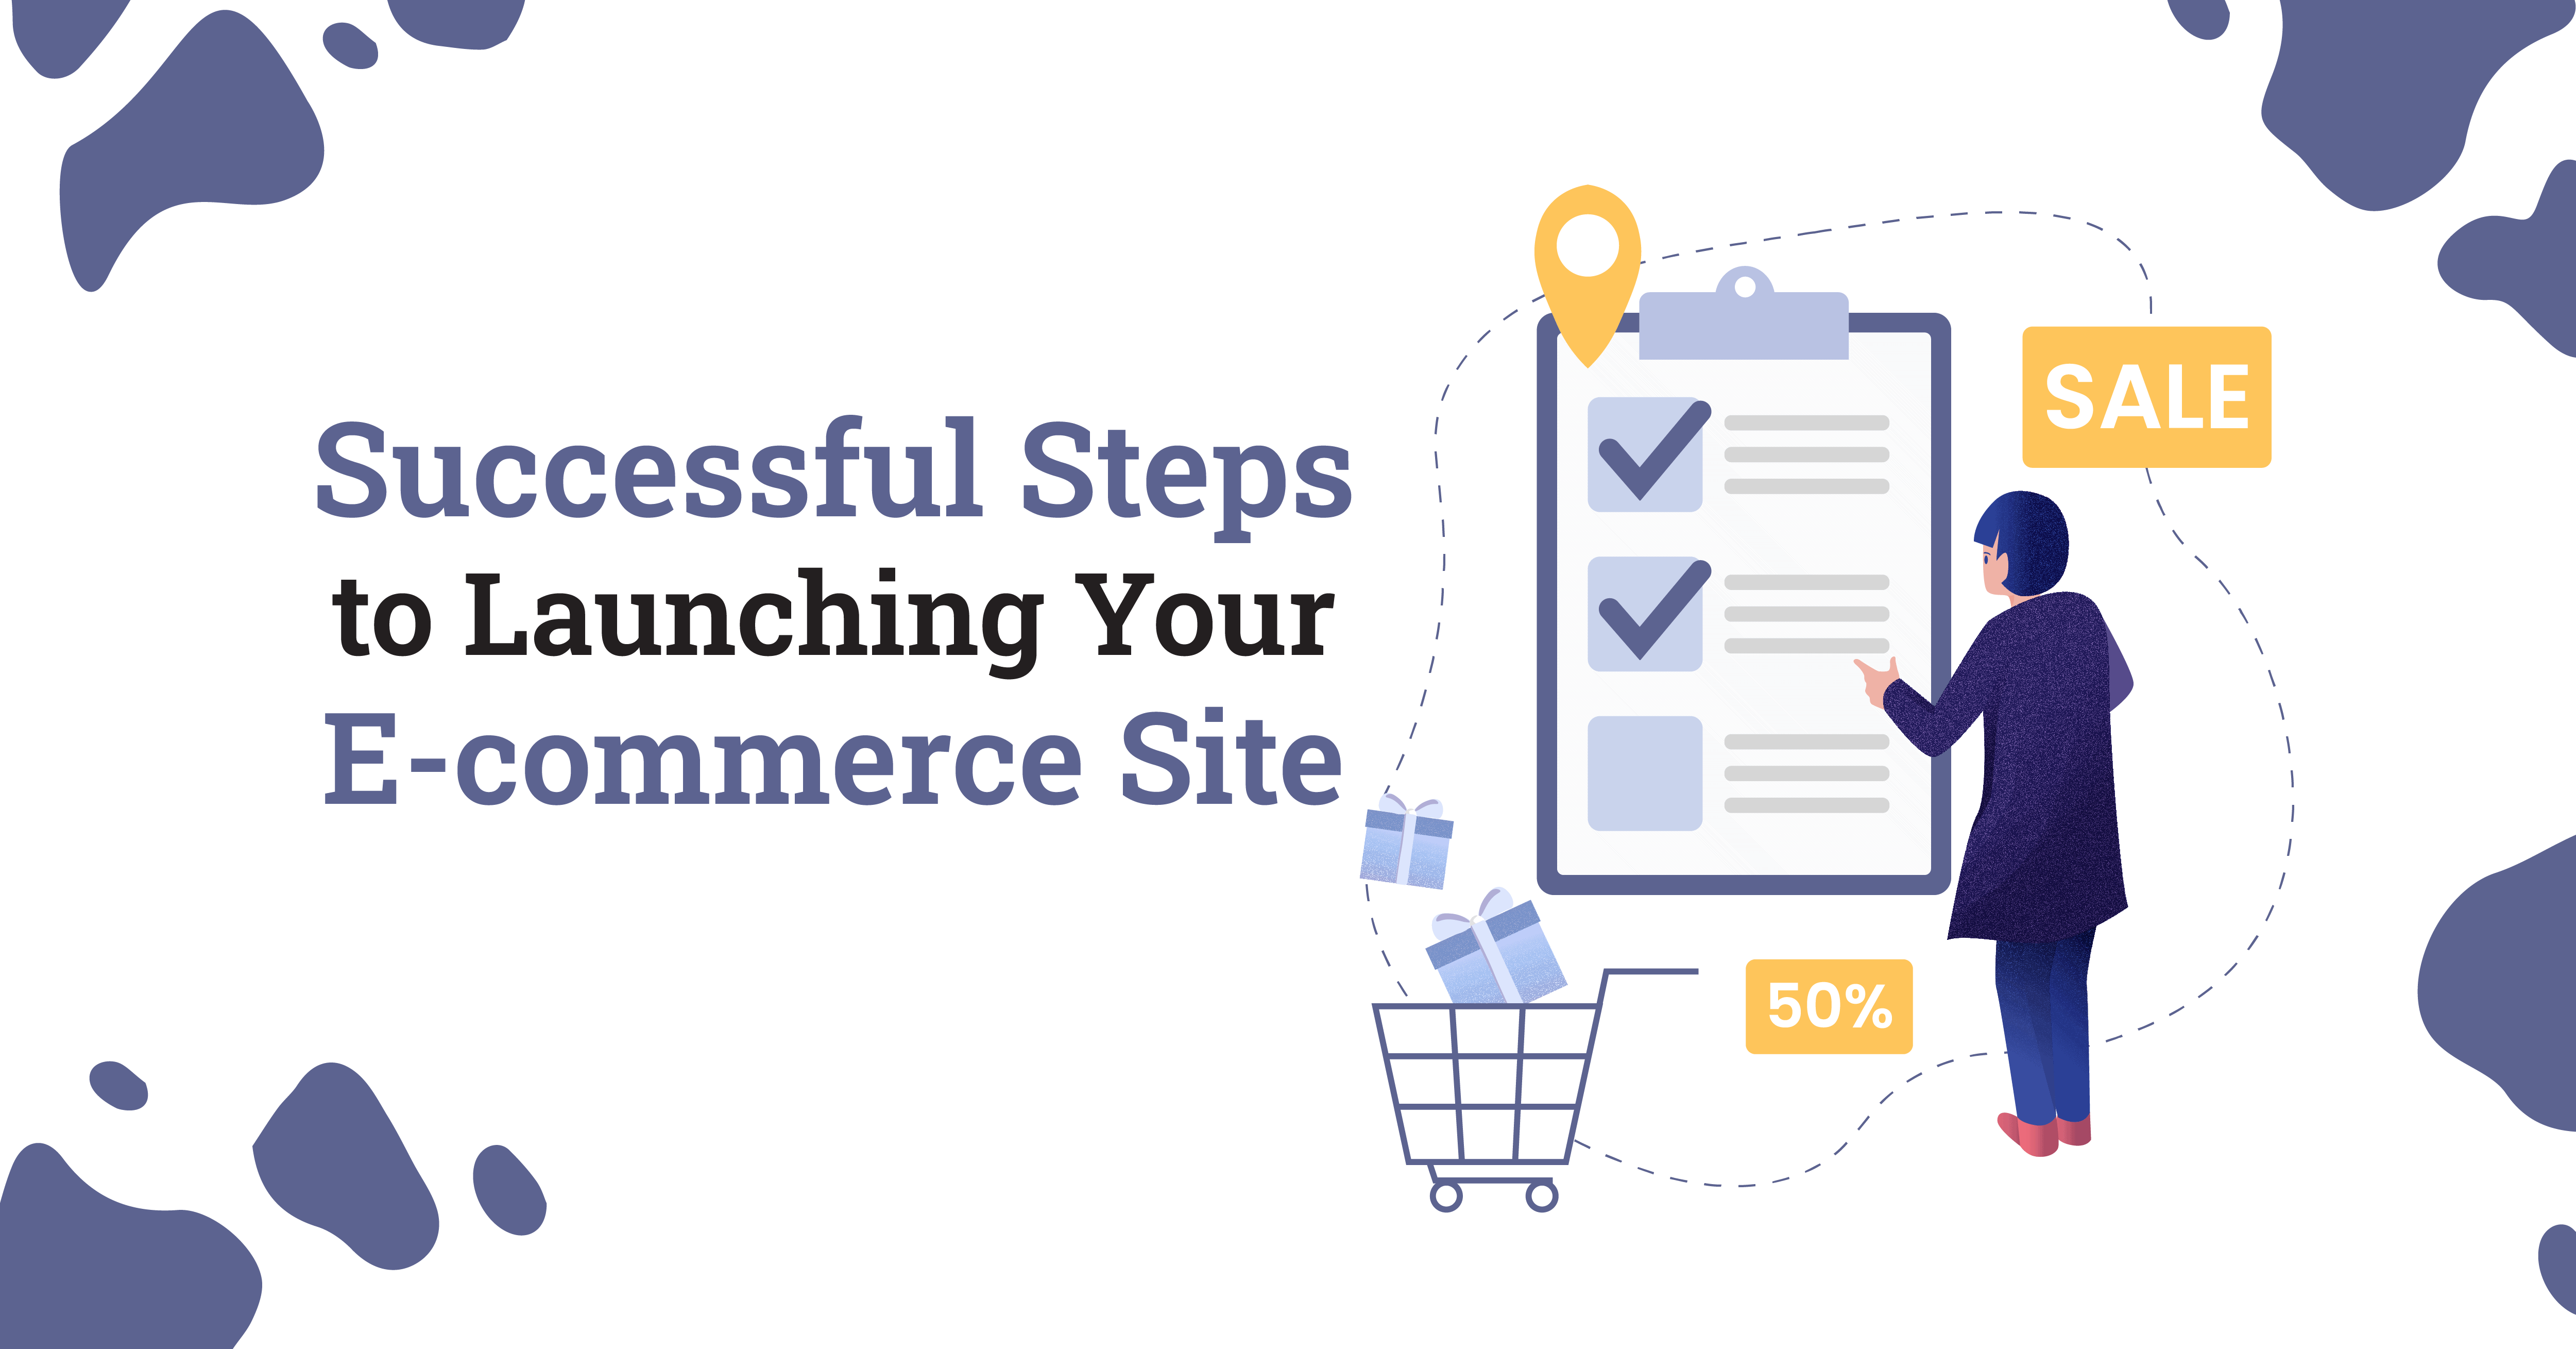 Successful Steps to Launching Your Ecommerce Site